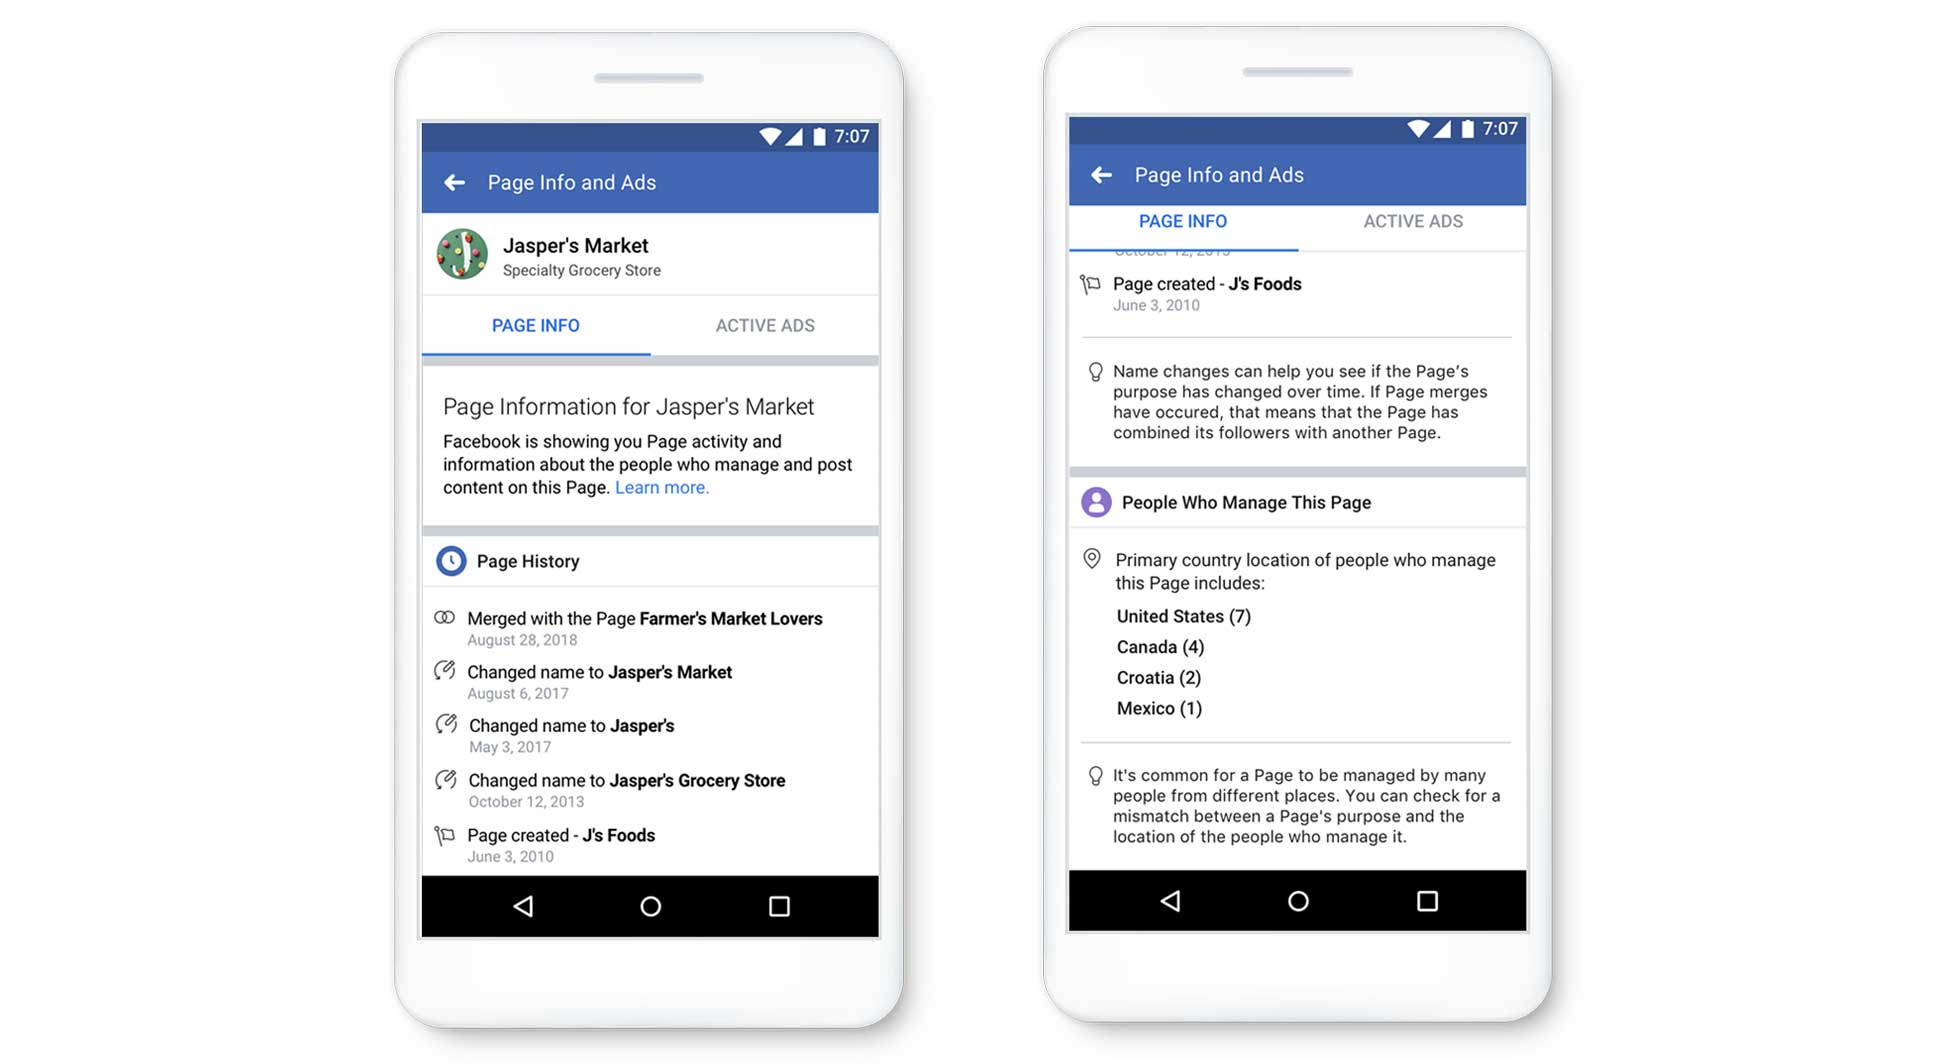 Facebook wants to make Pages more transparent